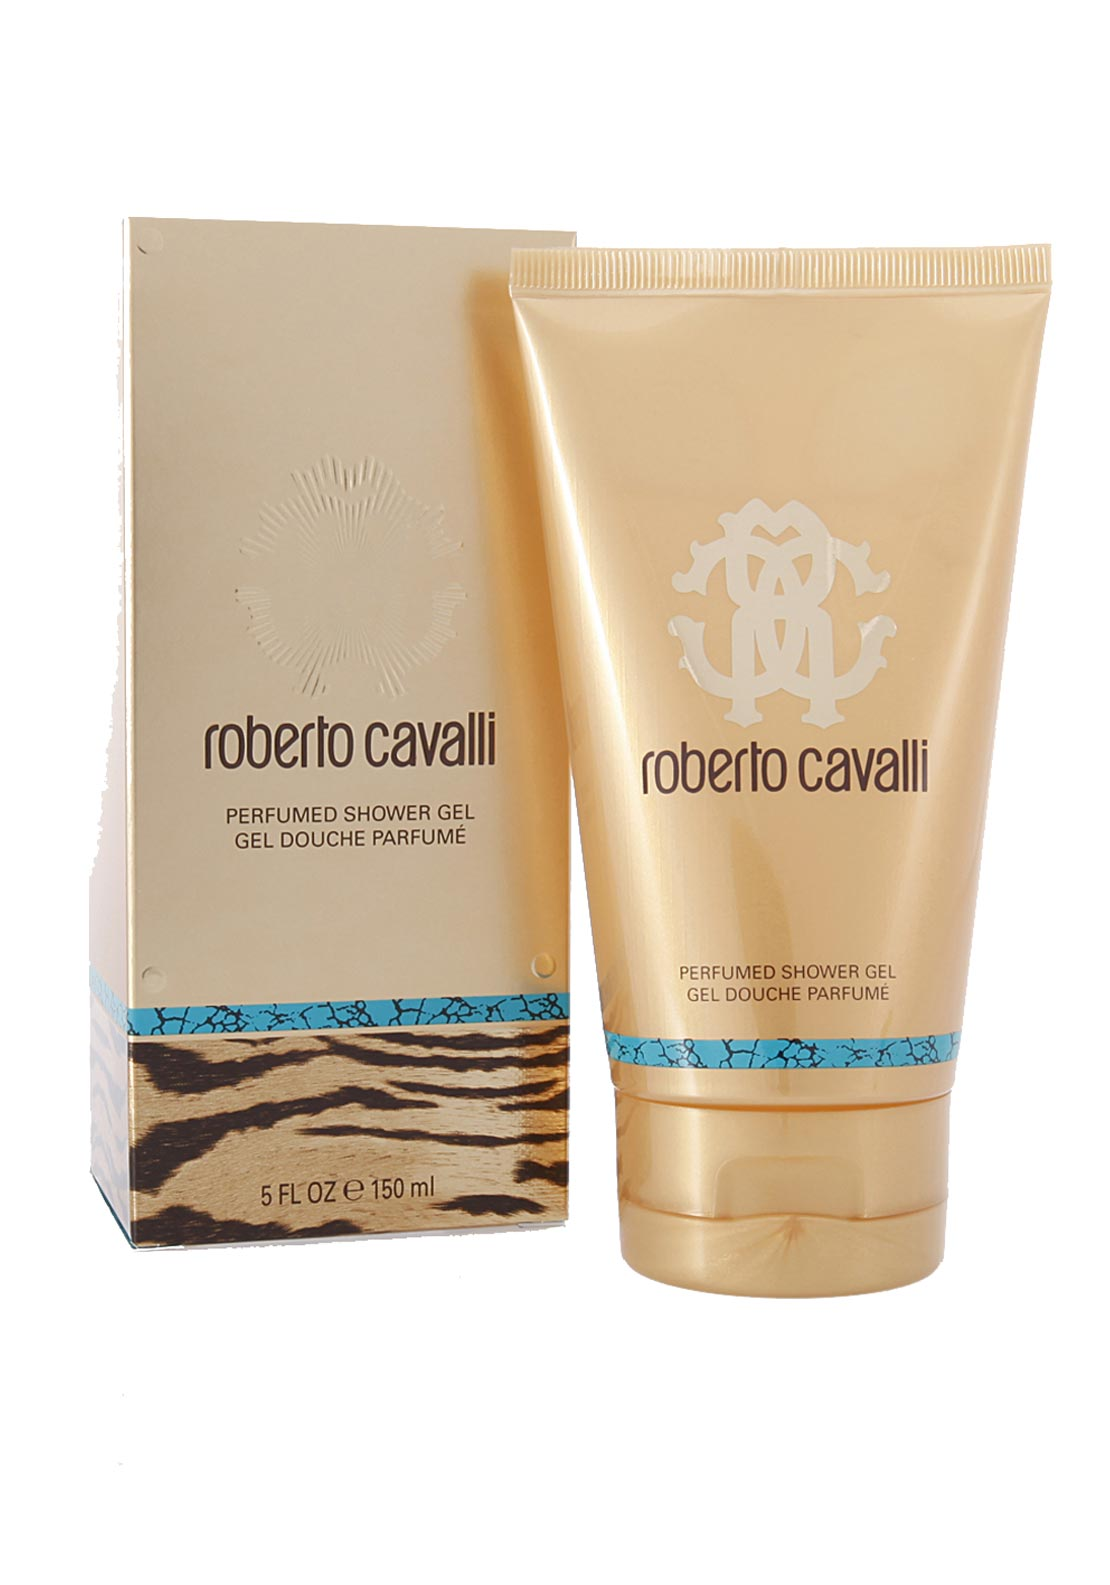 Roberto Cavalli Perfumed Shower Gel, 150ml